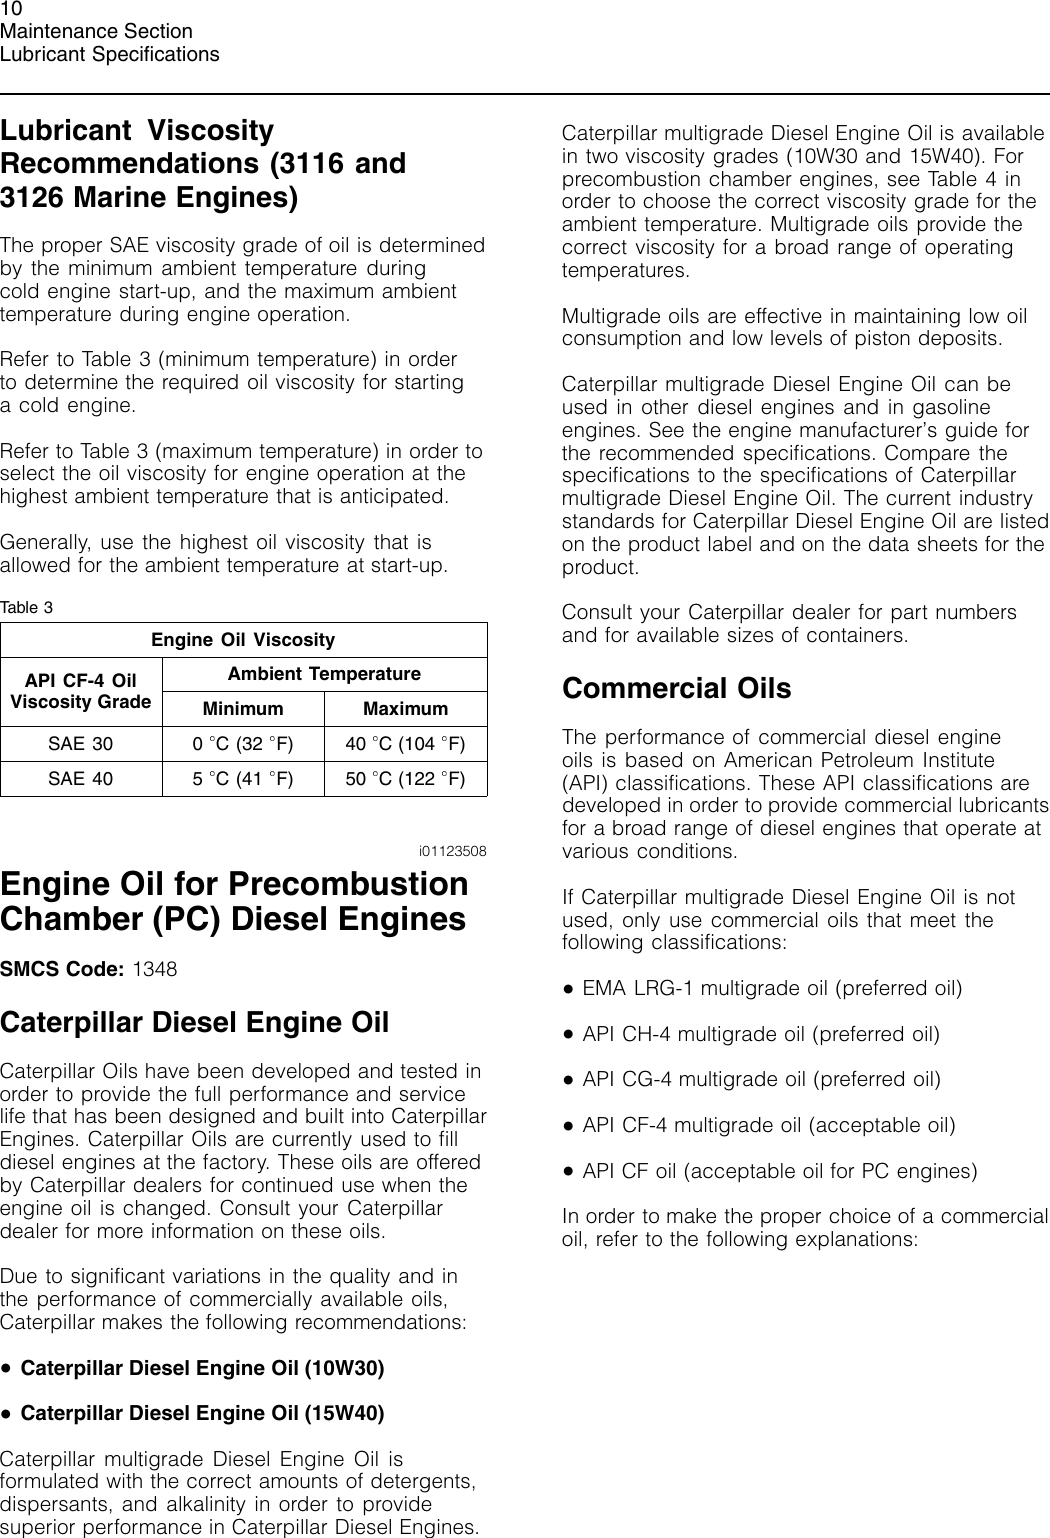 3Com Caterpillar Commercial Diesel Engine Sebu6251 06 Owners Manual